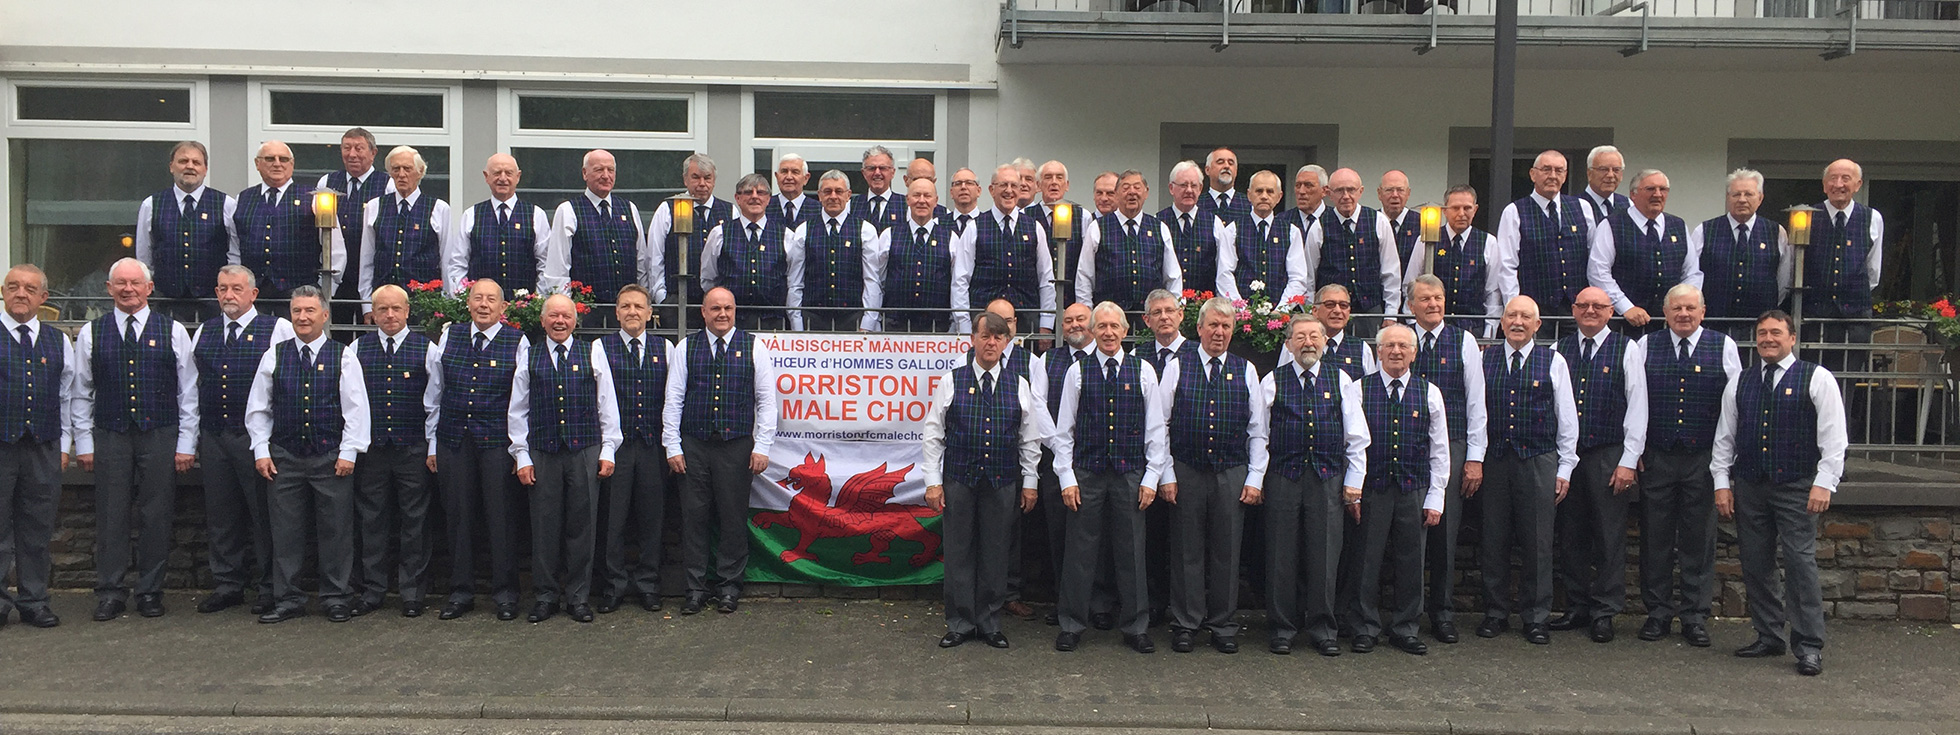 https://www.morristonrfcmalechoir.co.uk/wp-content/uploads/2016/09/IMG_4190.jpg